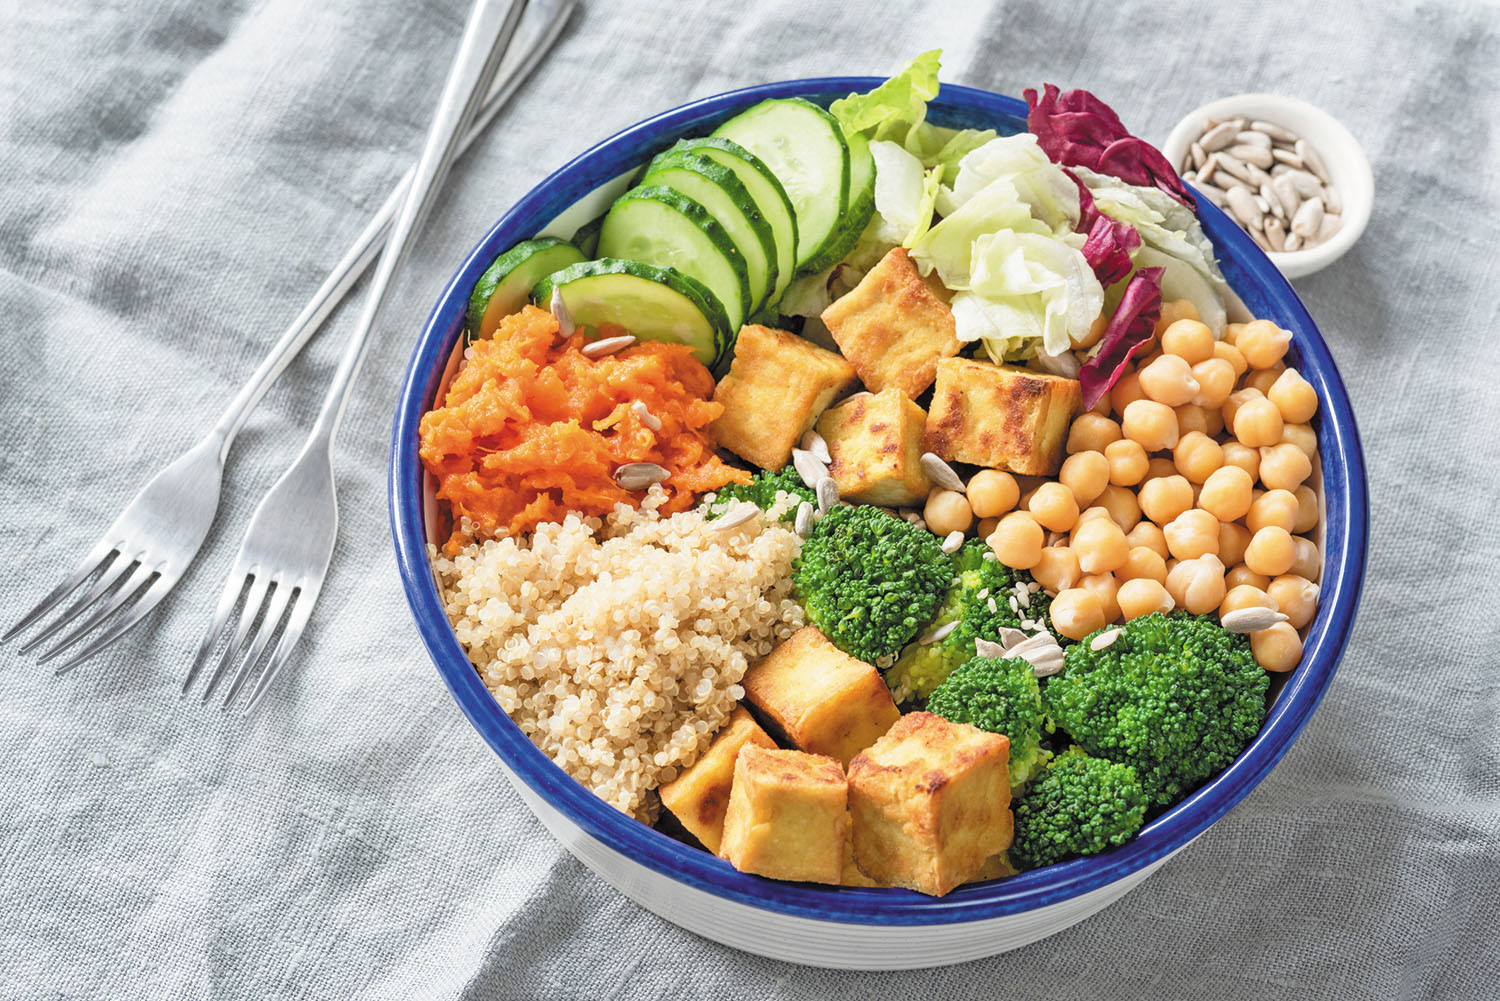 Eat more plant-based proteins to boost longevity - Harvard Health